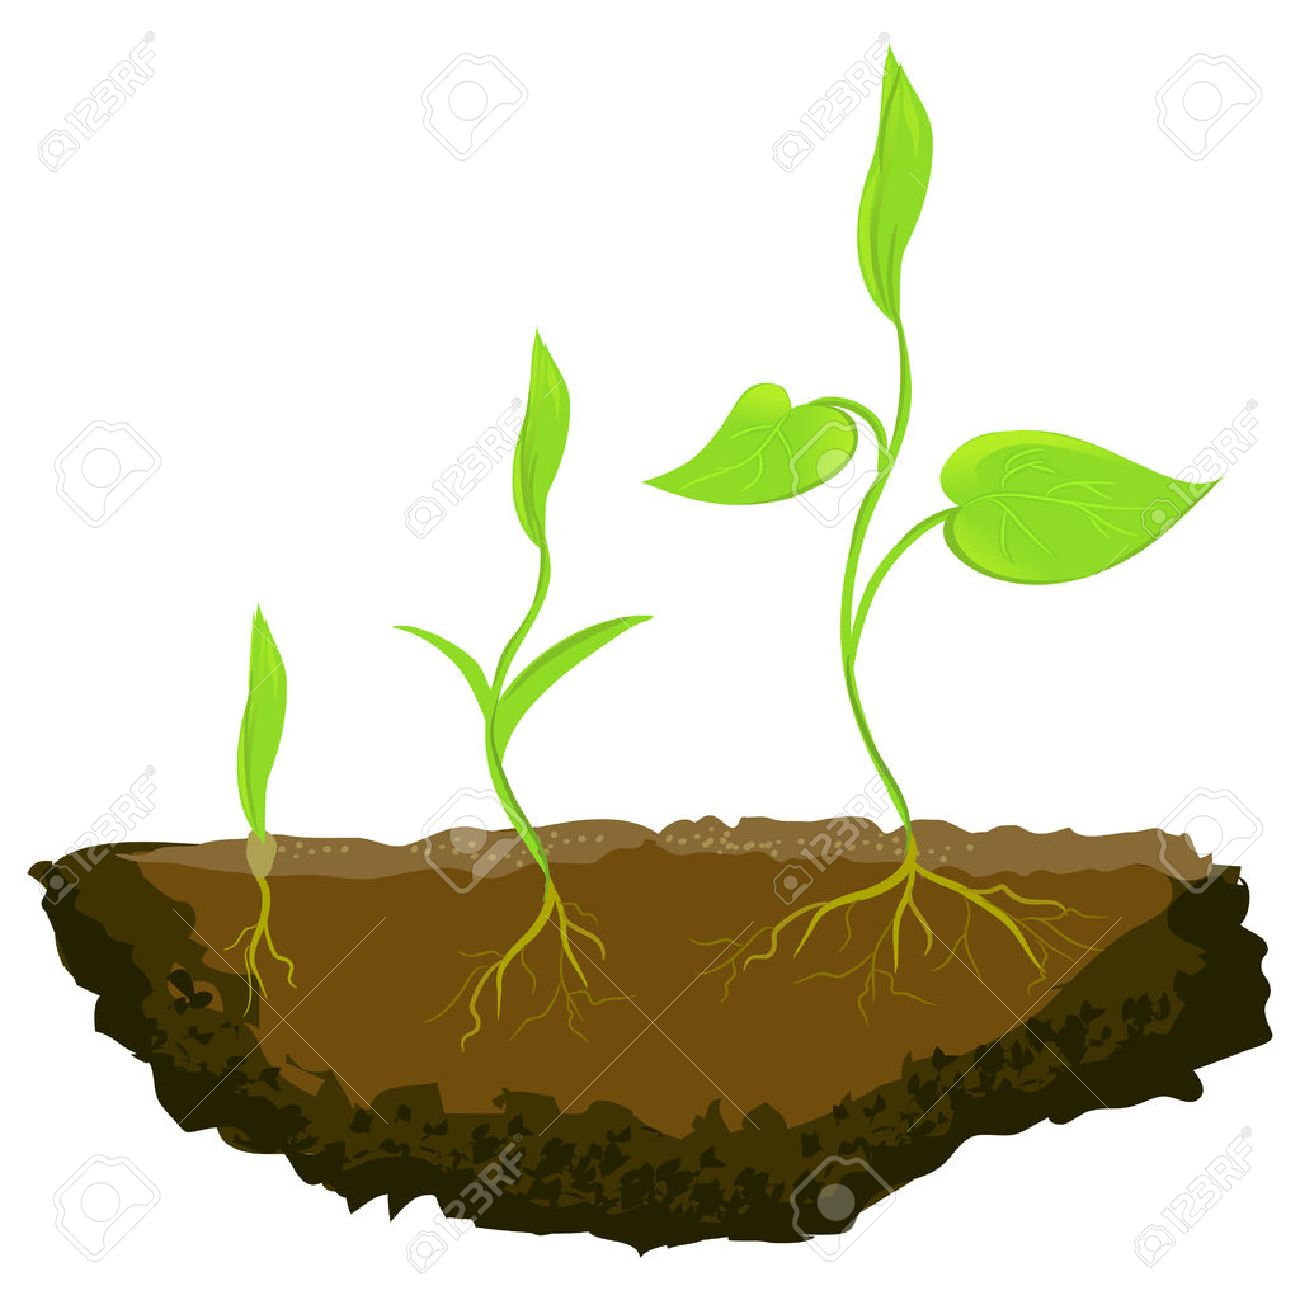 Plant grow clipart picture transparent stock Growing Plant Clipart | Free download best Growing Plant Clipart on ... picture transparent stock